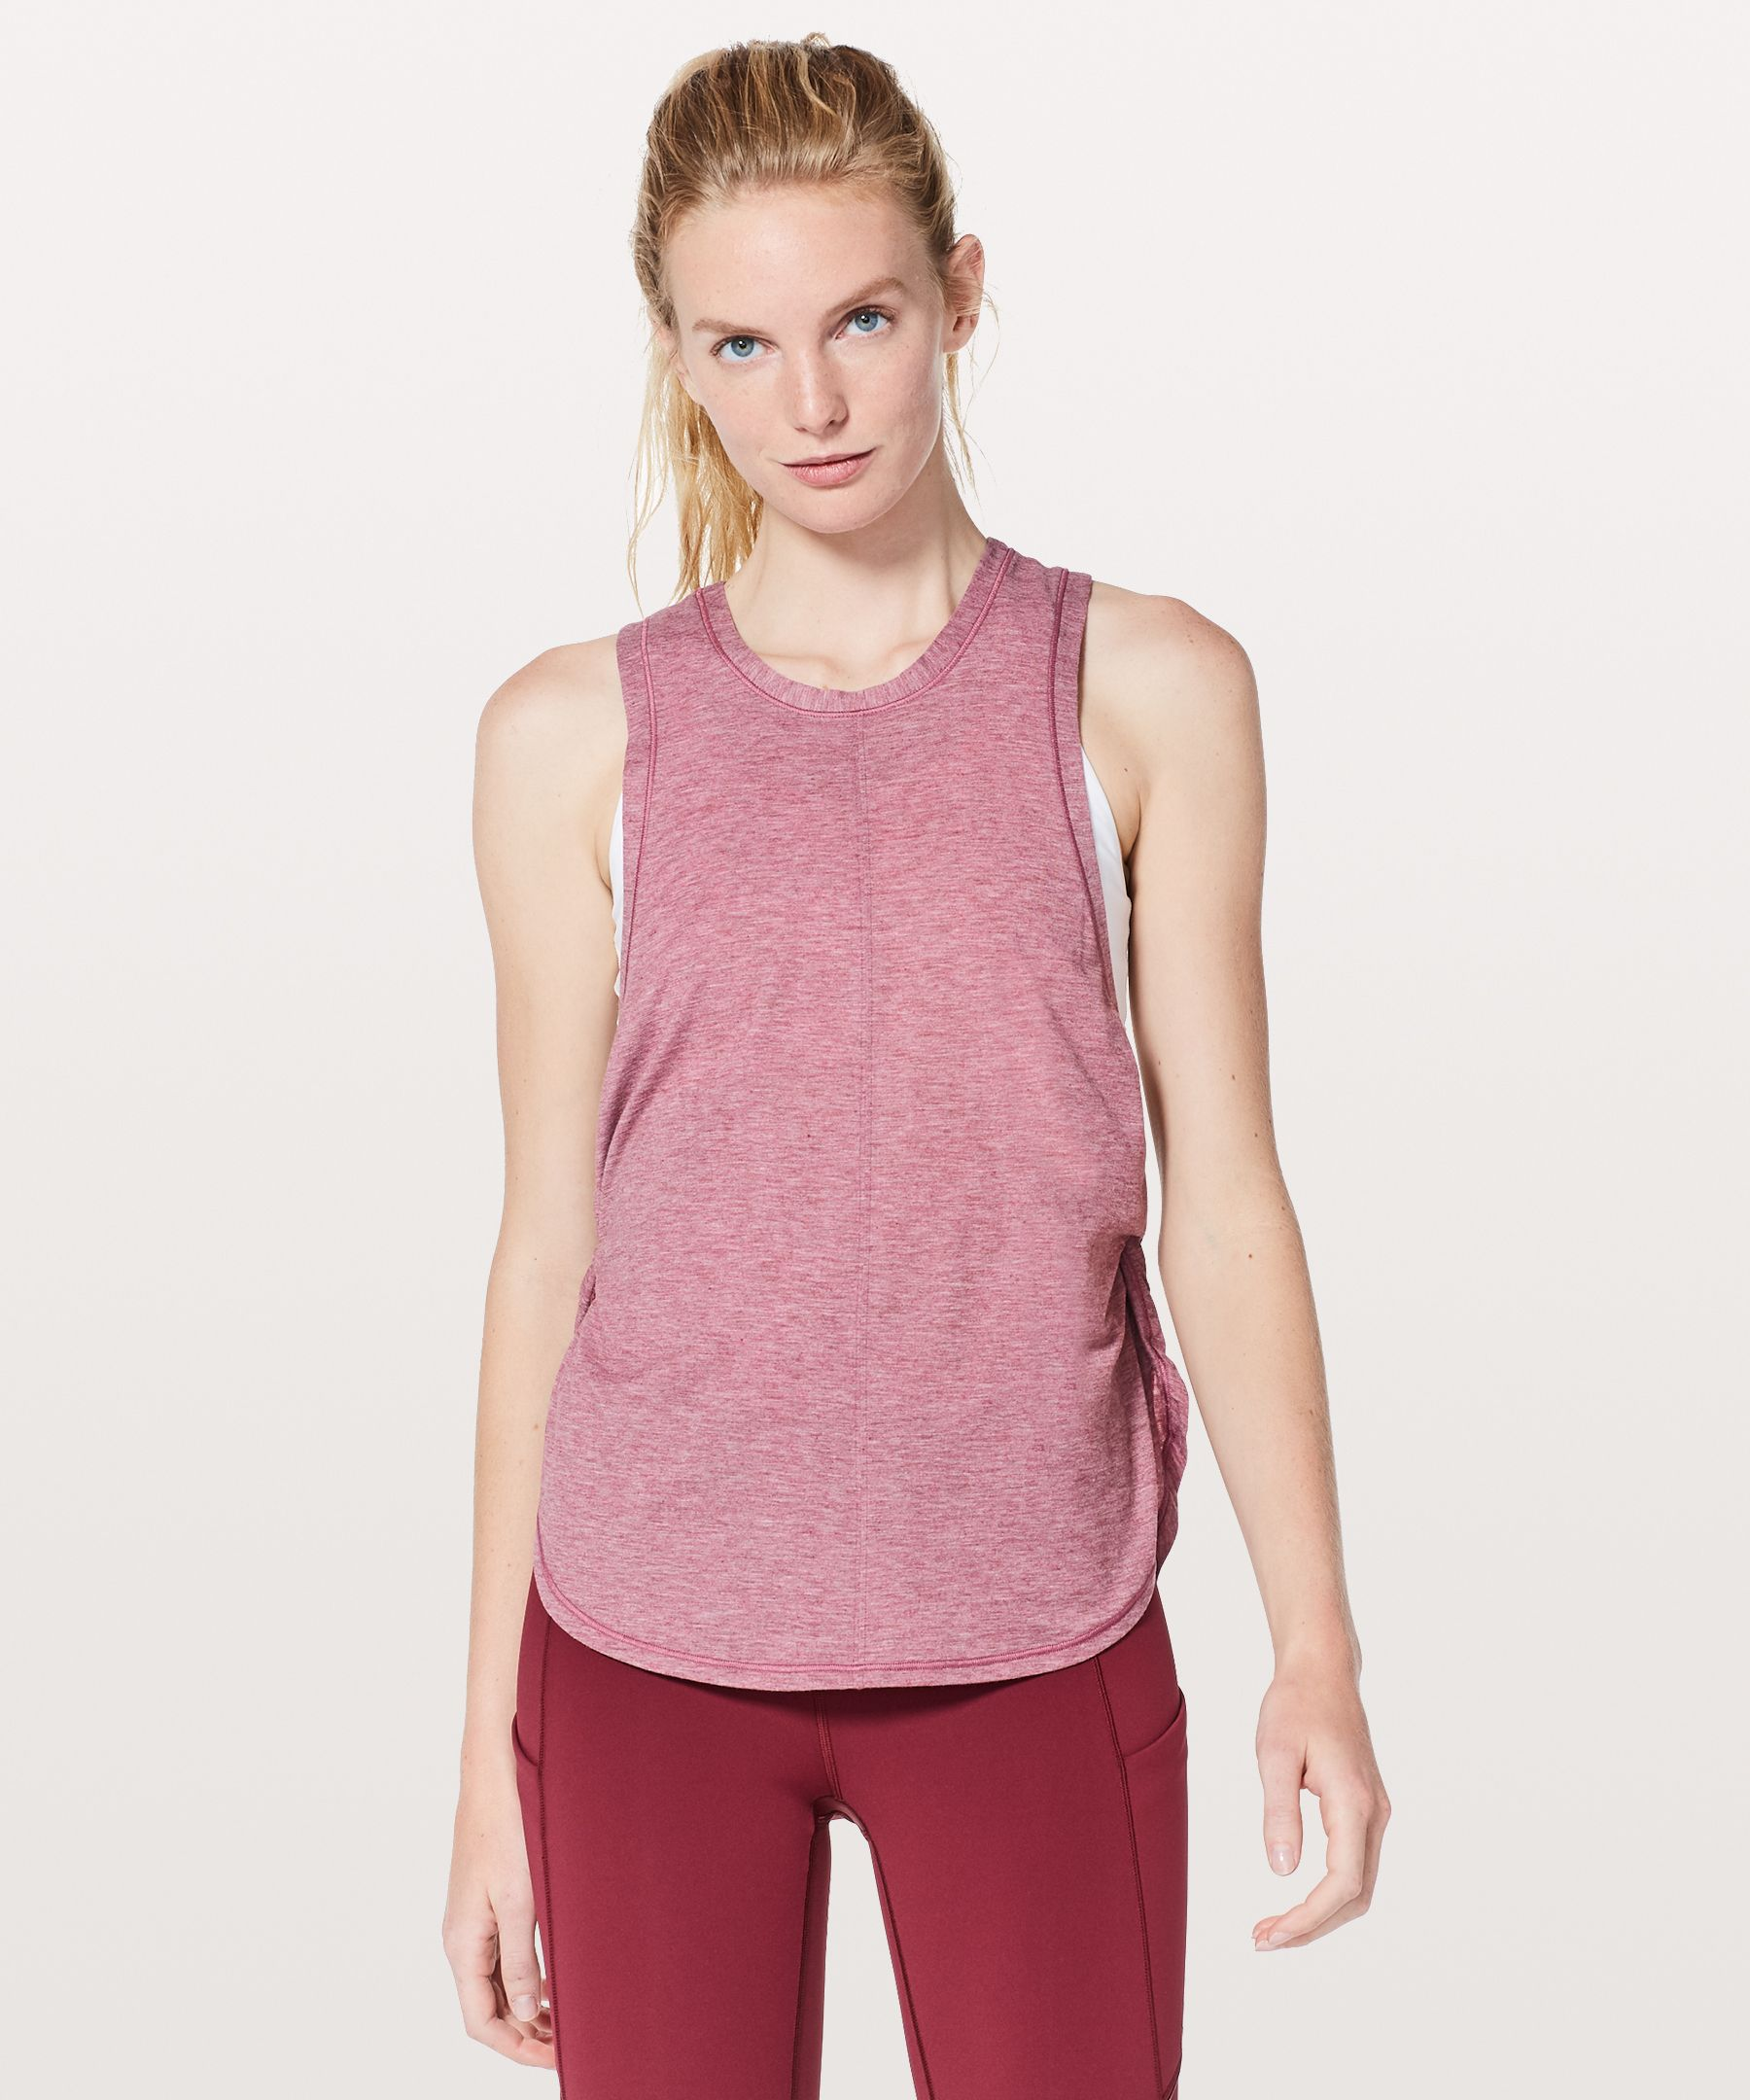 Victory Lap Tank Online Only by Lululemon